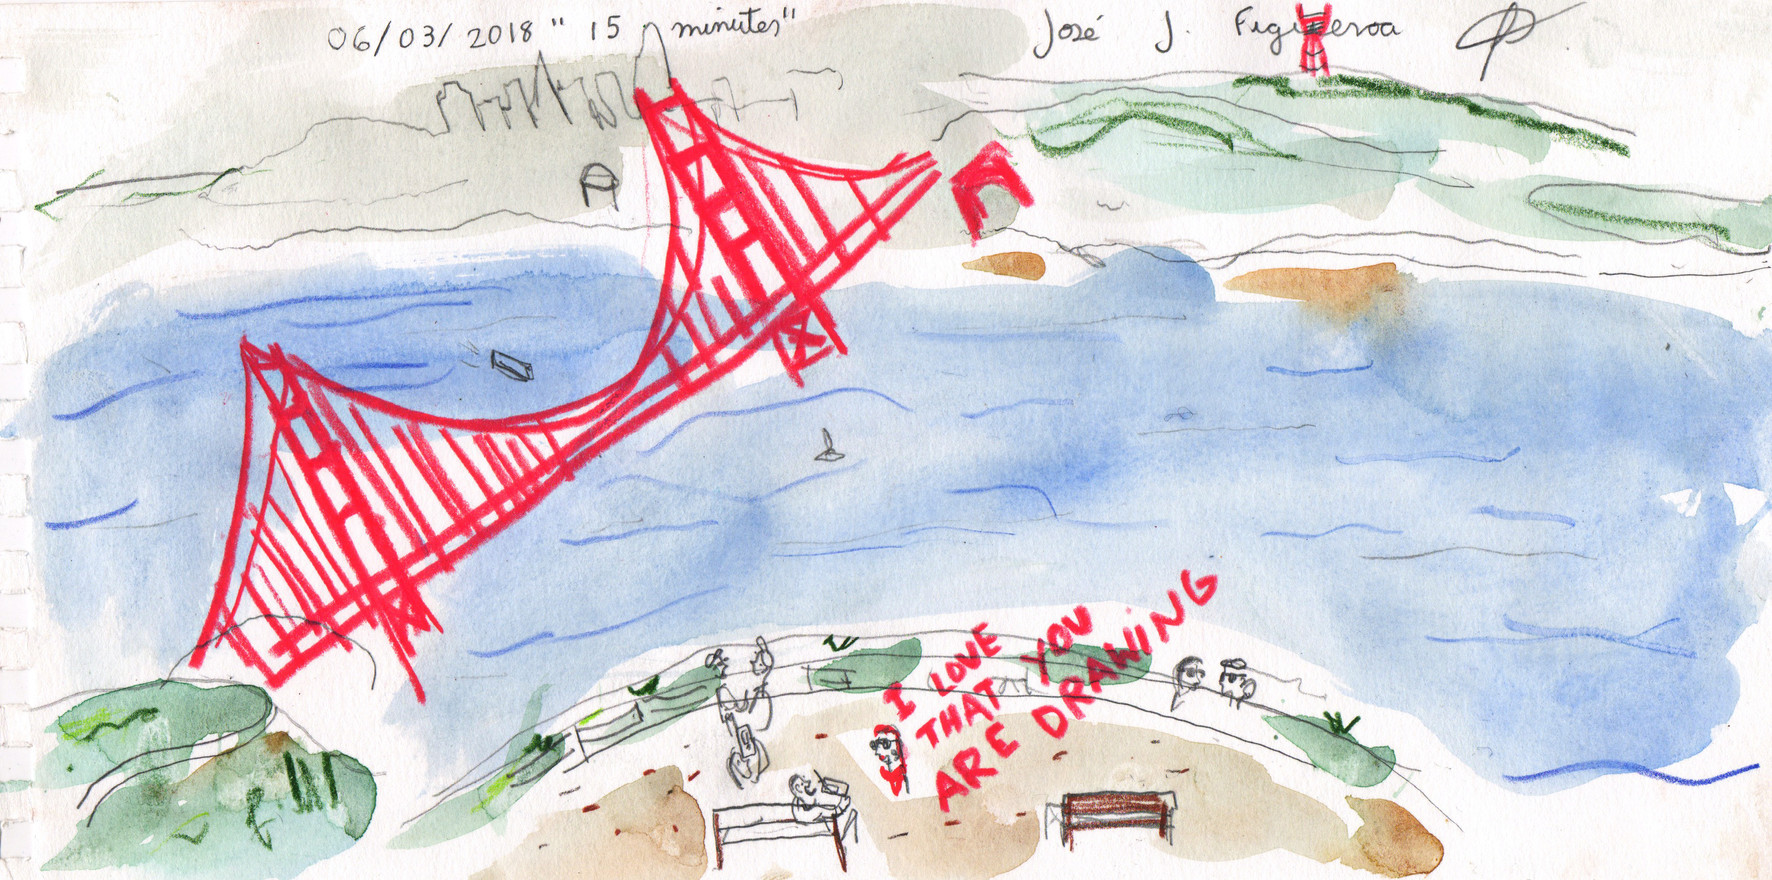 06-03-2018 15 min golden gate.jpg